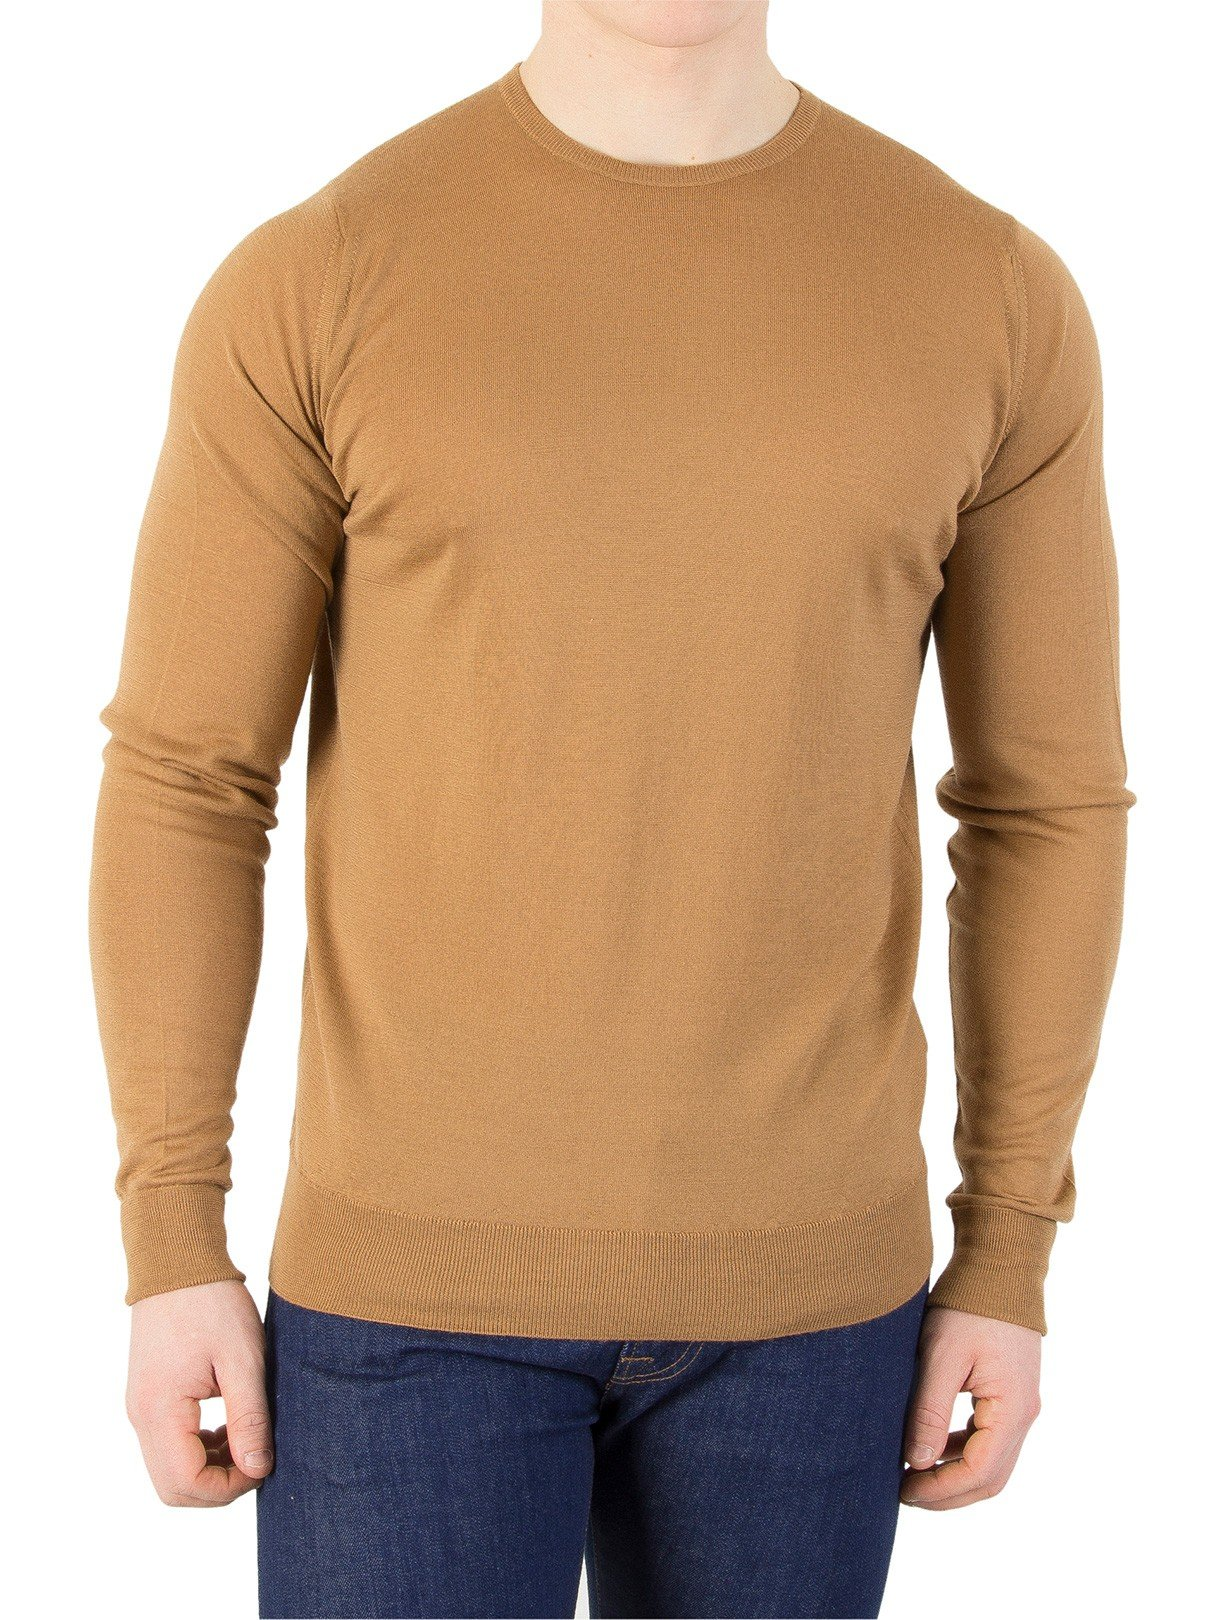 John Smedley Men's Marcus Knit, Brown, XX-Large